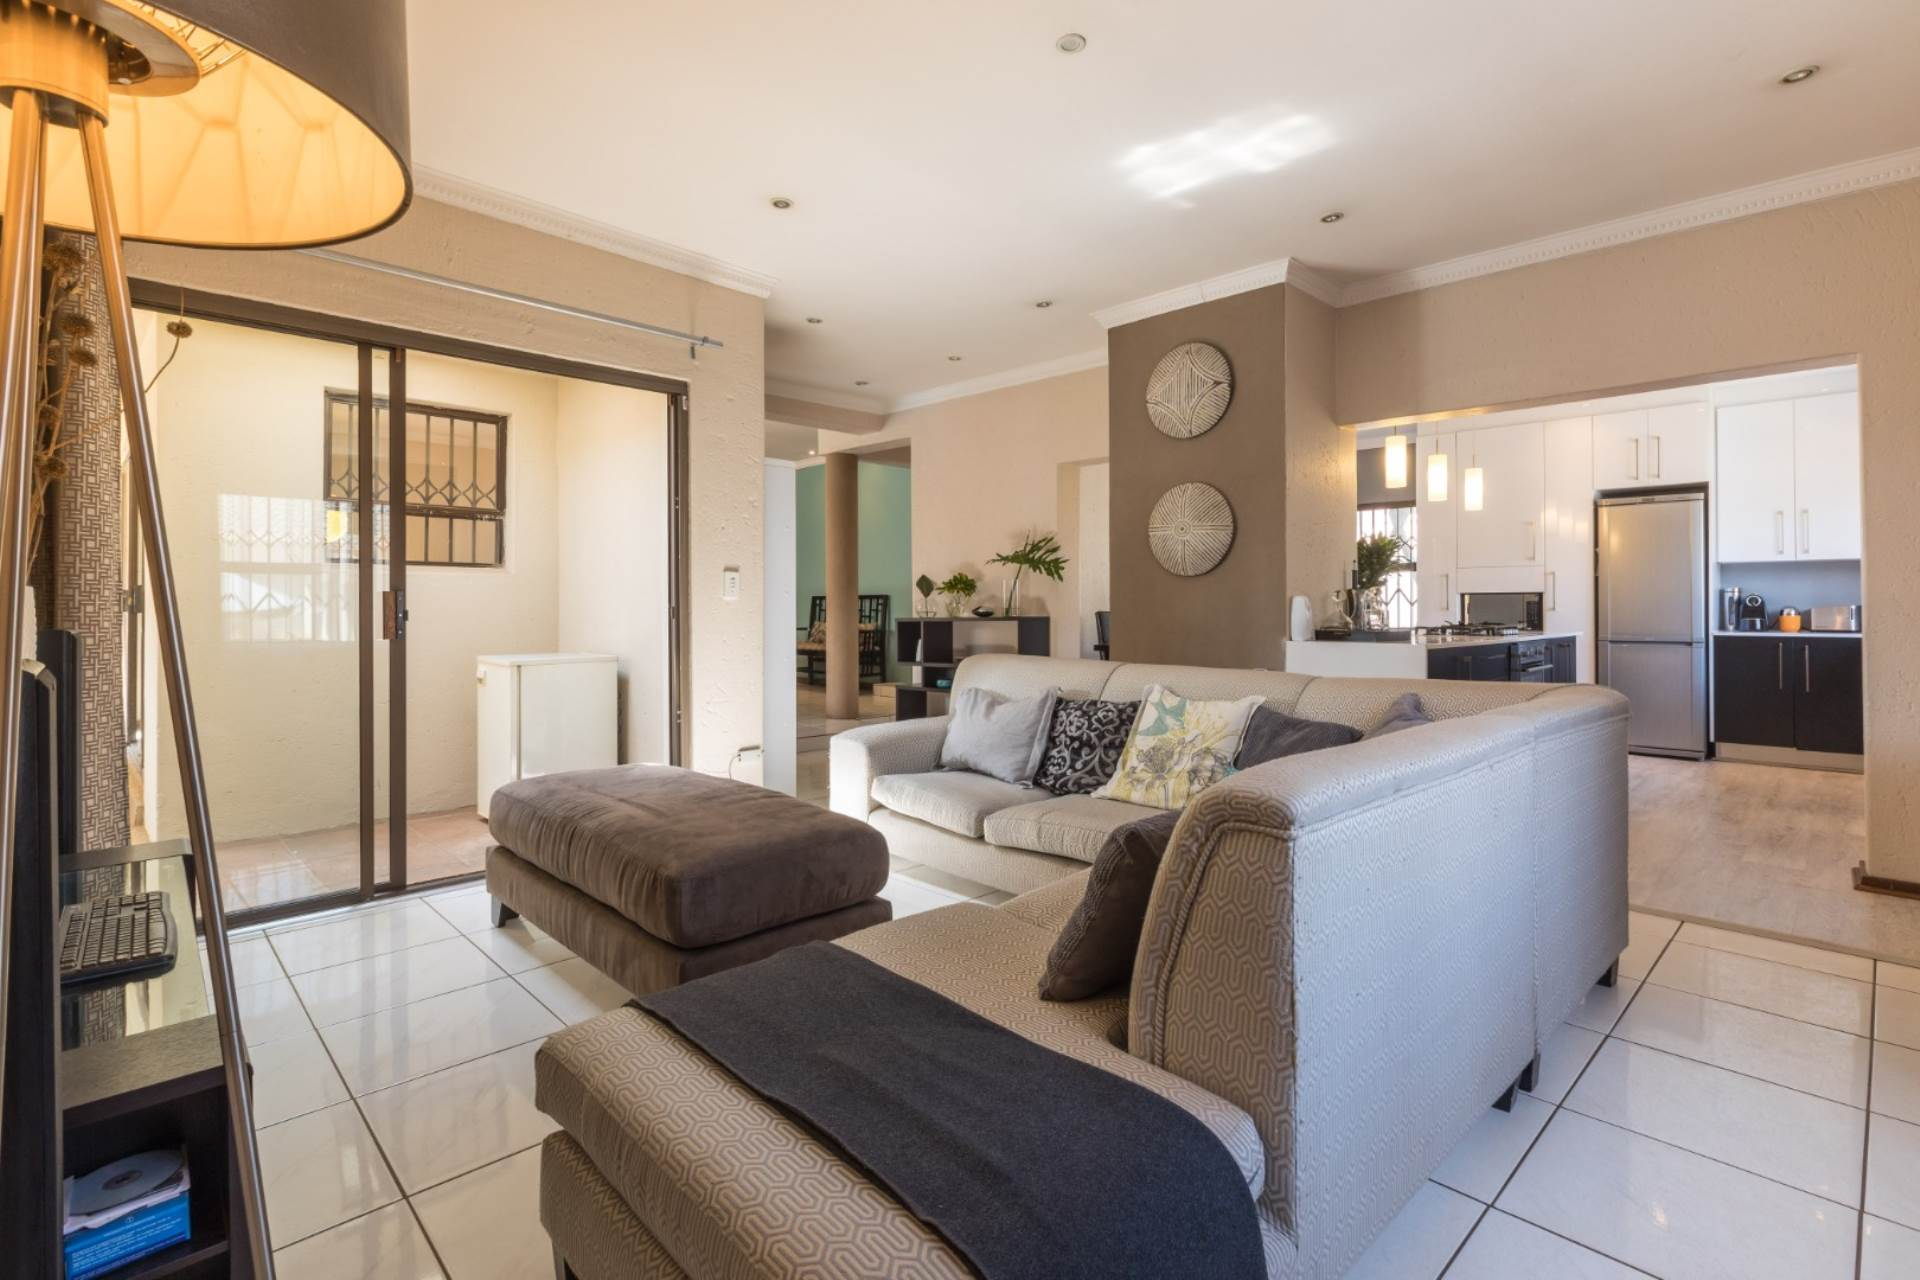 affordable bedroom suites in gauteng bakos brothers south Antique Bedroom Suites for Sale Antique Bedroom Suites for Sale